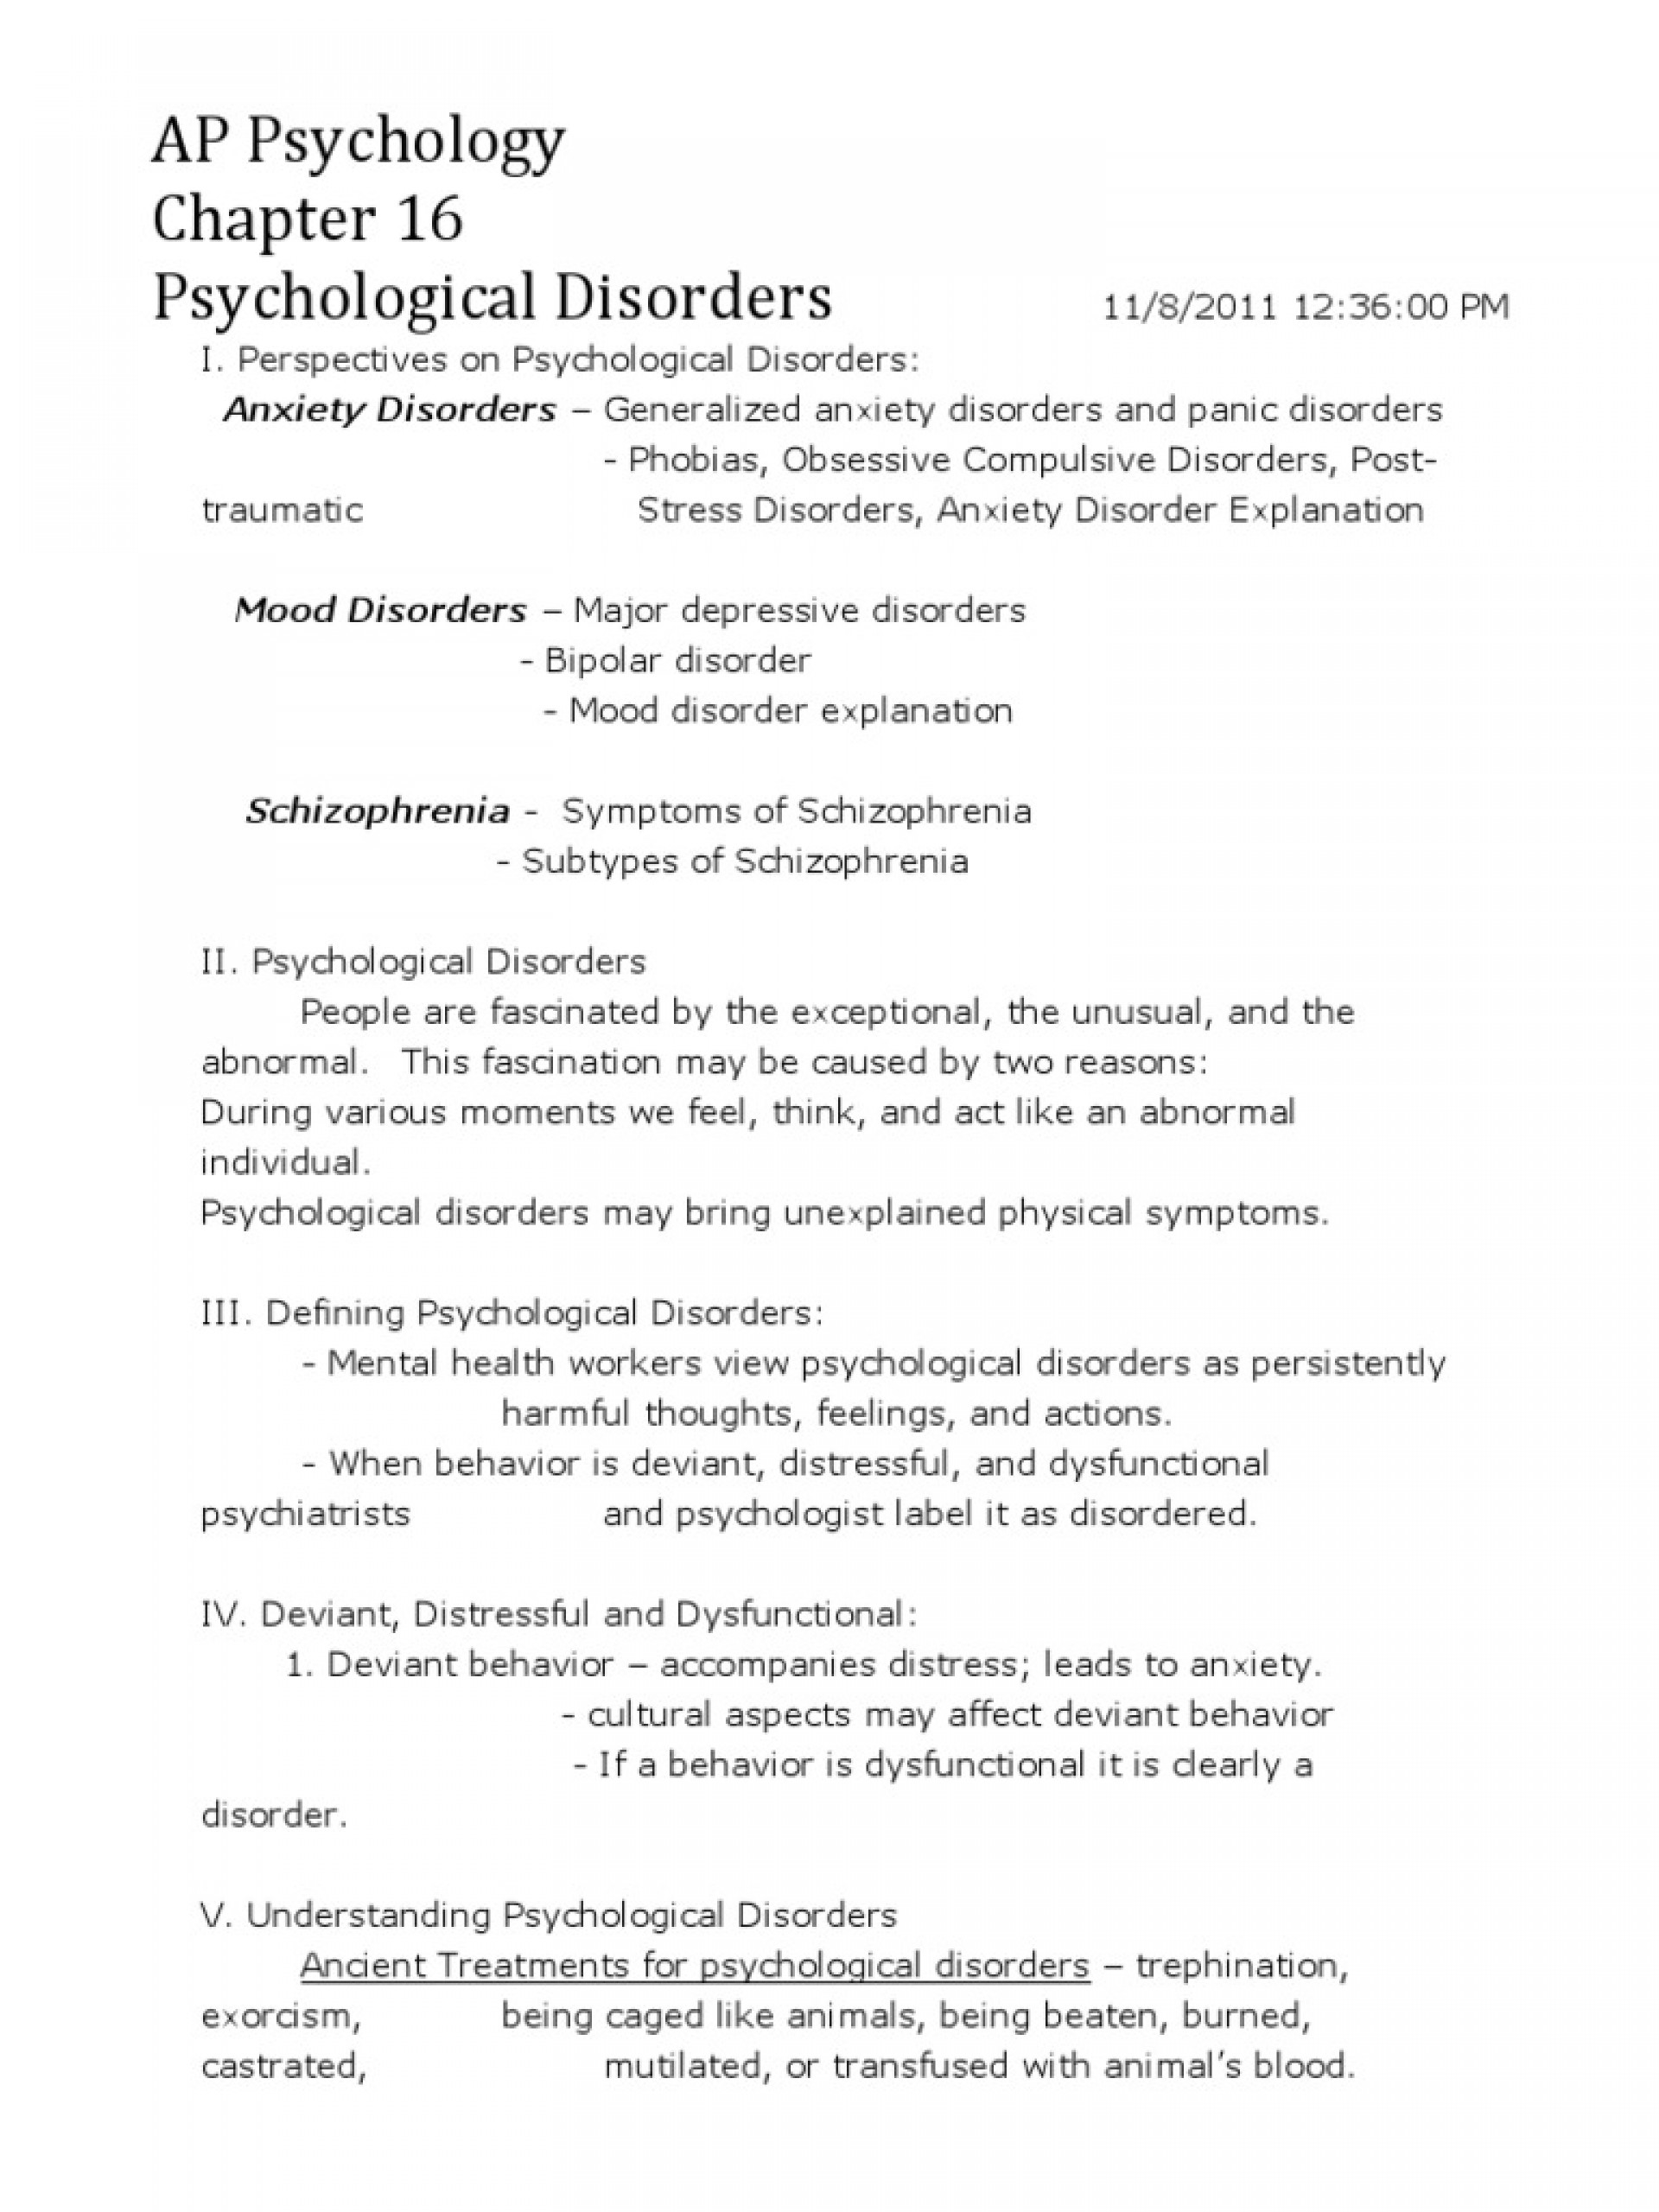 017 Research Paper On Eating Disorders Bipolar Disorder Essay Topics Title Pdf College Introduction Question Conclusion Examples Wonderful And The Media Psychological 1920